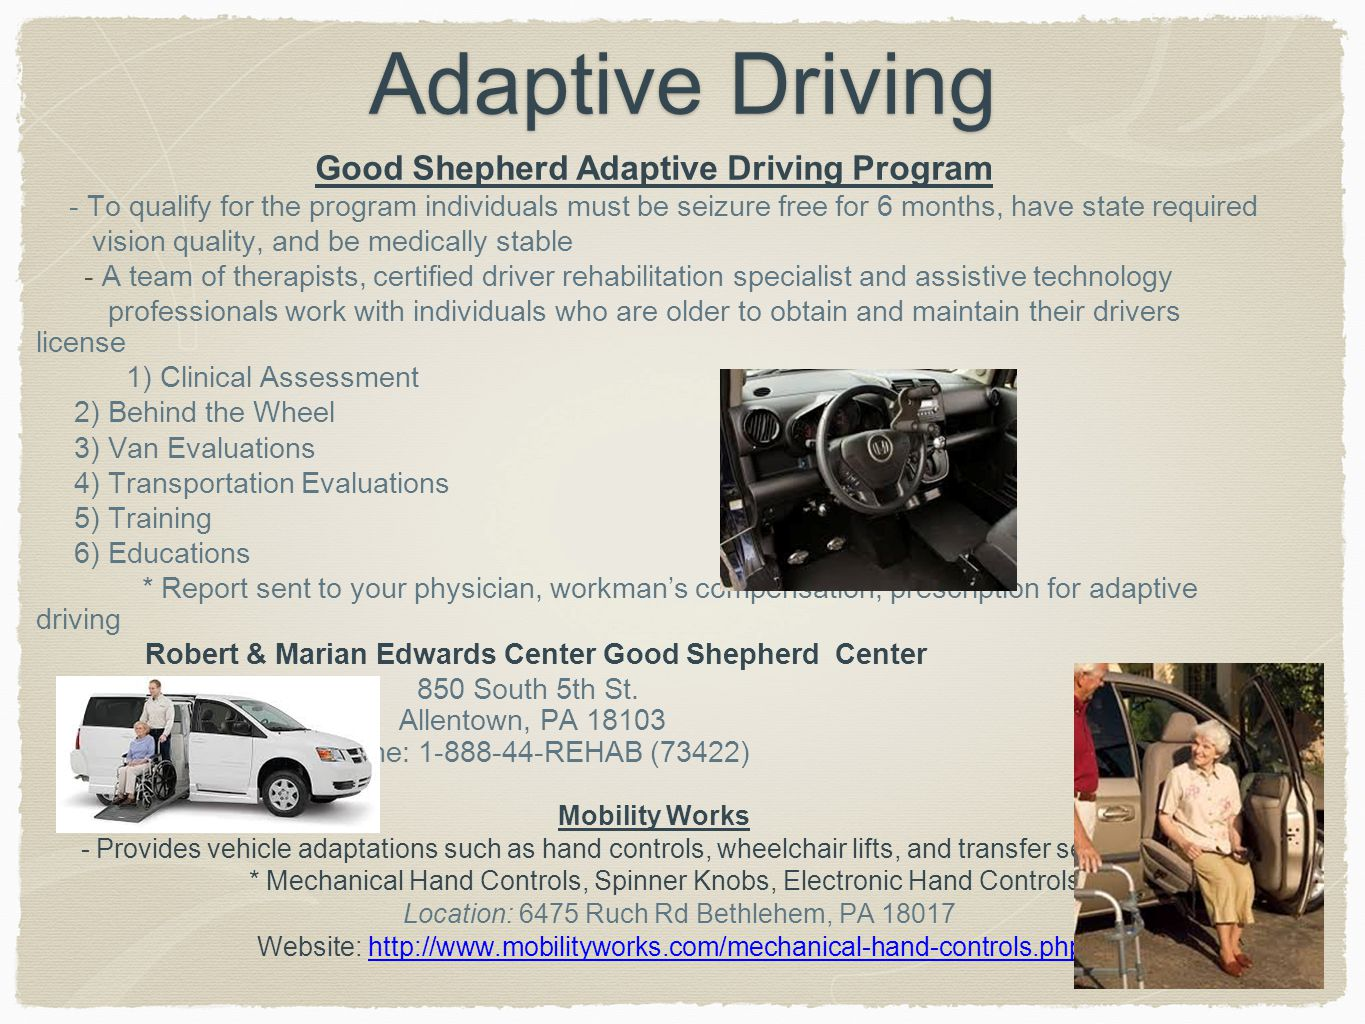 Adaptive Driving Good Shepherd Adaptive Driving Program - To qualify for the program individuals must be seizure free for 6 months, have state required vision quality, and be medically stable - A team of therapists, certified driver rehabilitation specialist and assistive technology professionals work with individuals who are older to obtain and maintain their drivers license 1) Clinical Assessment 2) Behind the Wheel 3) Van Evaluations 4) Transportation Evaluations 5) Training 6) Educations * Report sent to your physician, workman's compensation, prescription for adaptive driving Robert & Marian Edwards Center Good Shepherd Center 850 South 5th St.